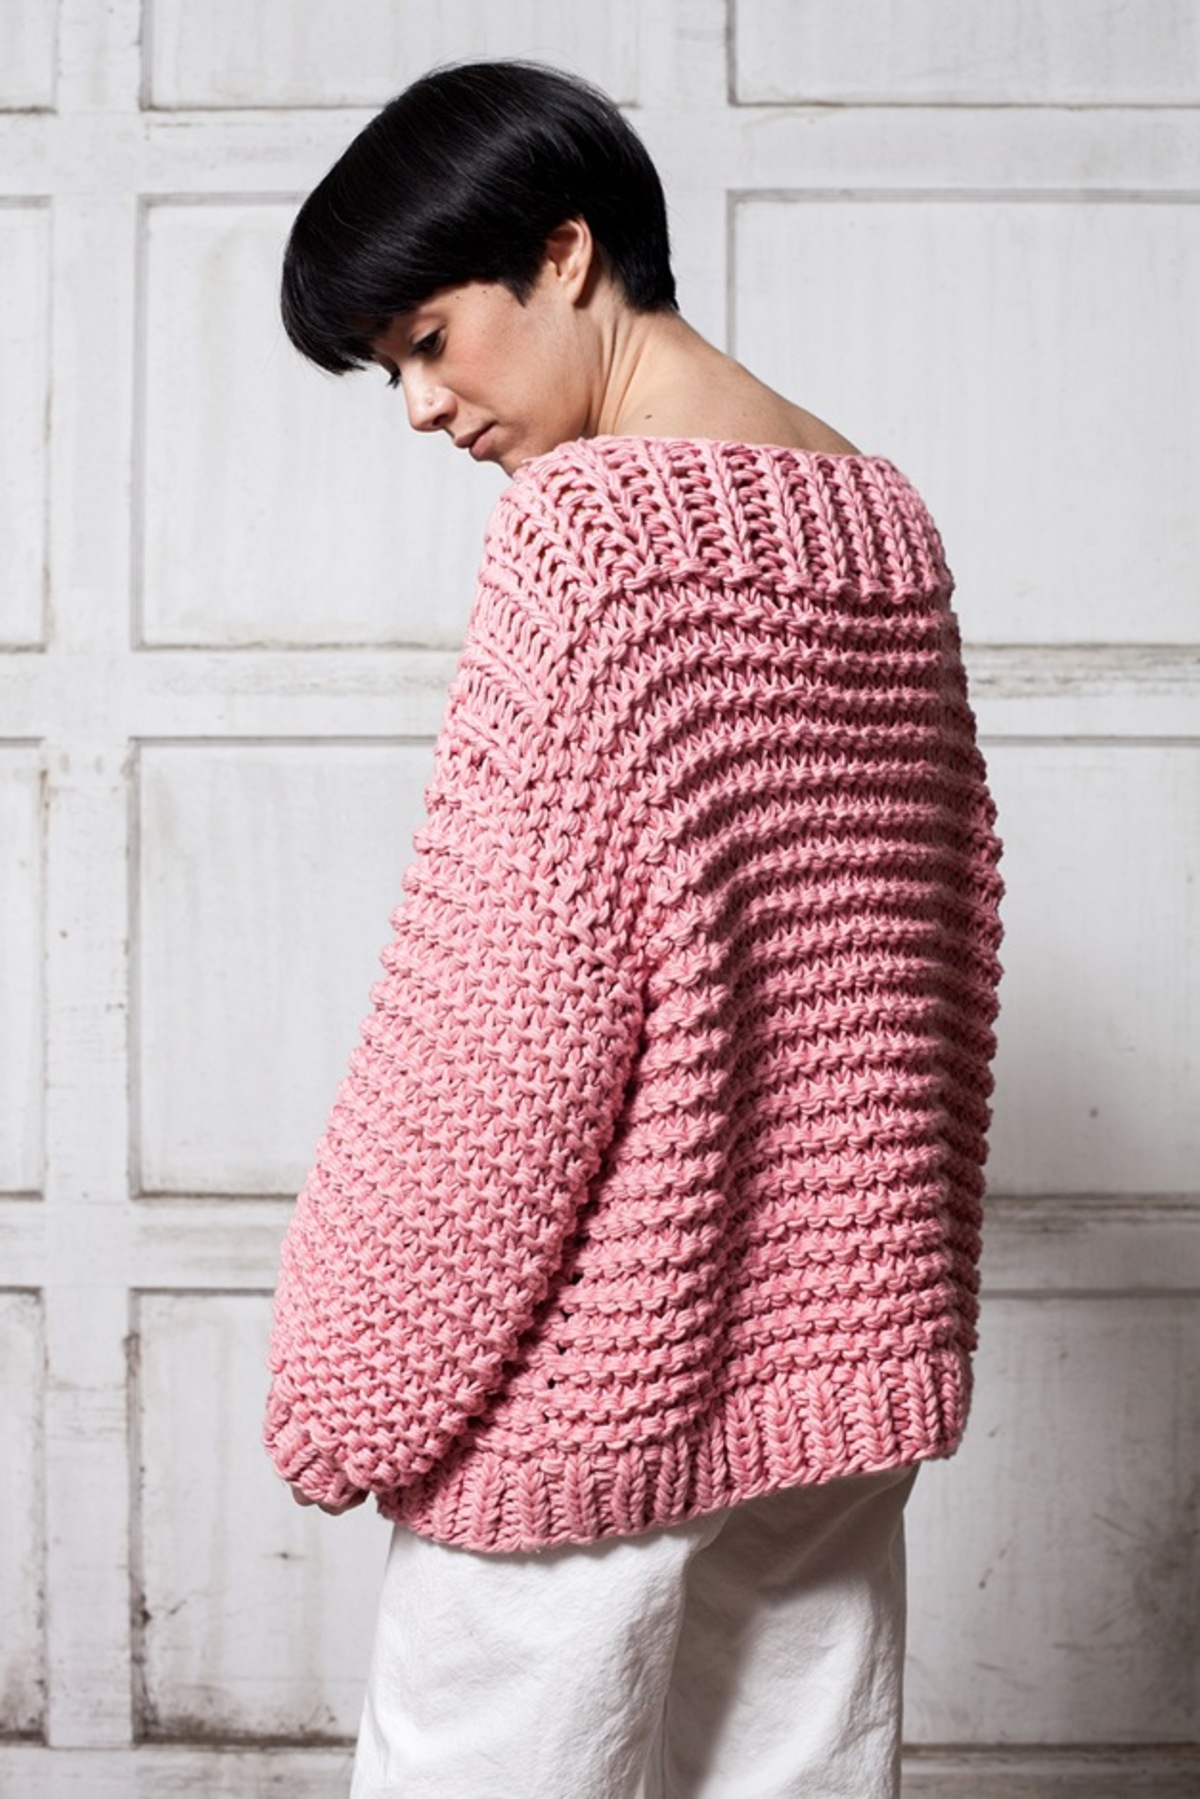 I Love Mr. Mittens Boatneck Jumper - bubblegum | Garmentory